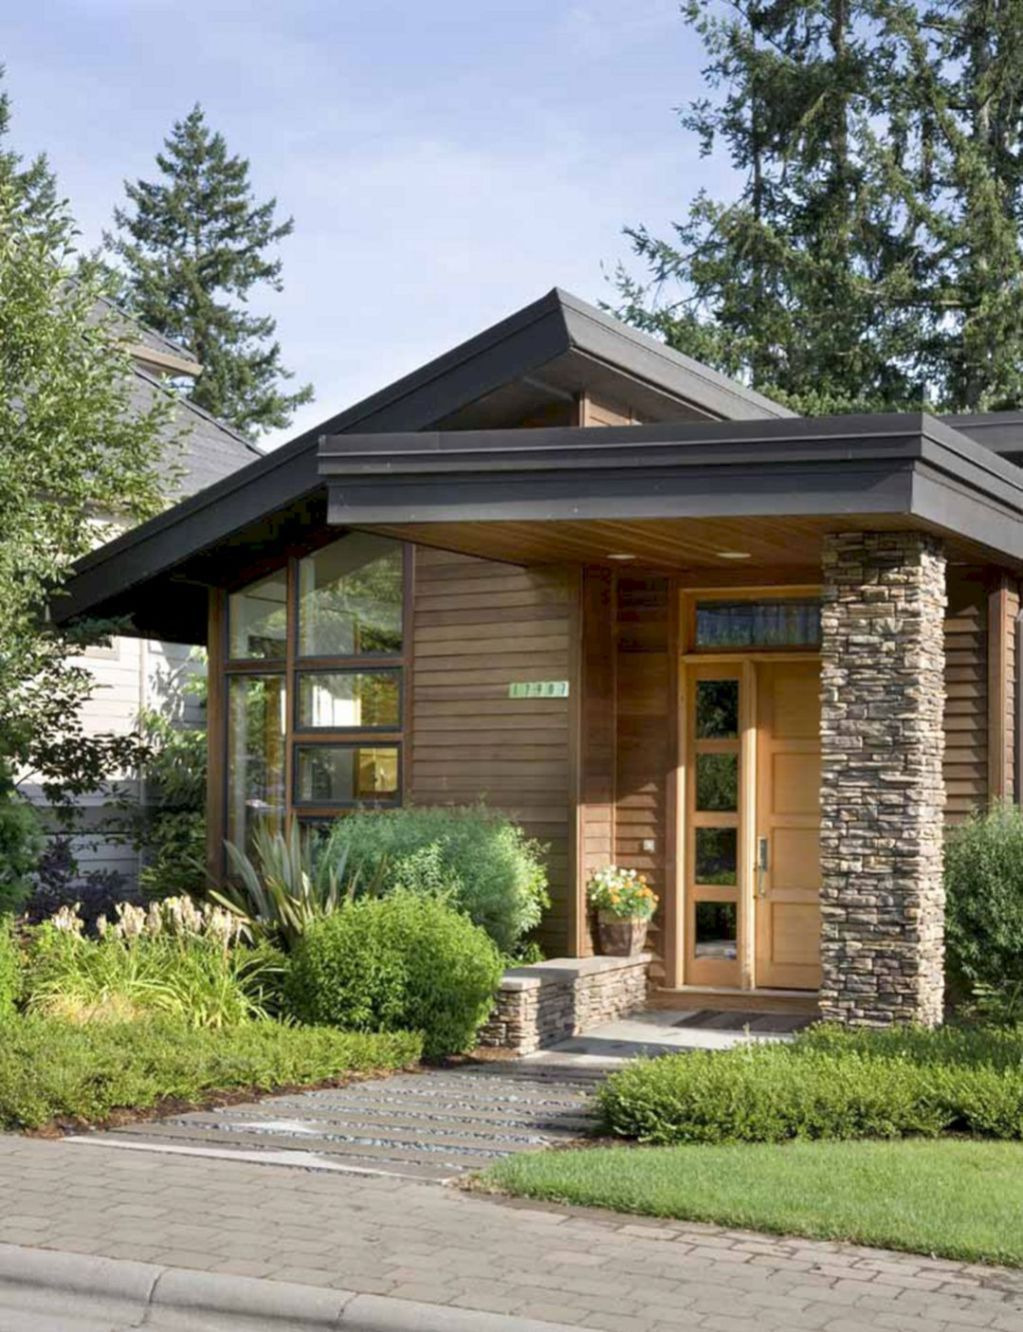 Small Contemporary Home Designs Elegant top 10 Modern Tiny House Design and Small Homes Collections